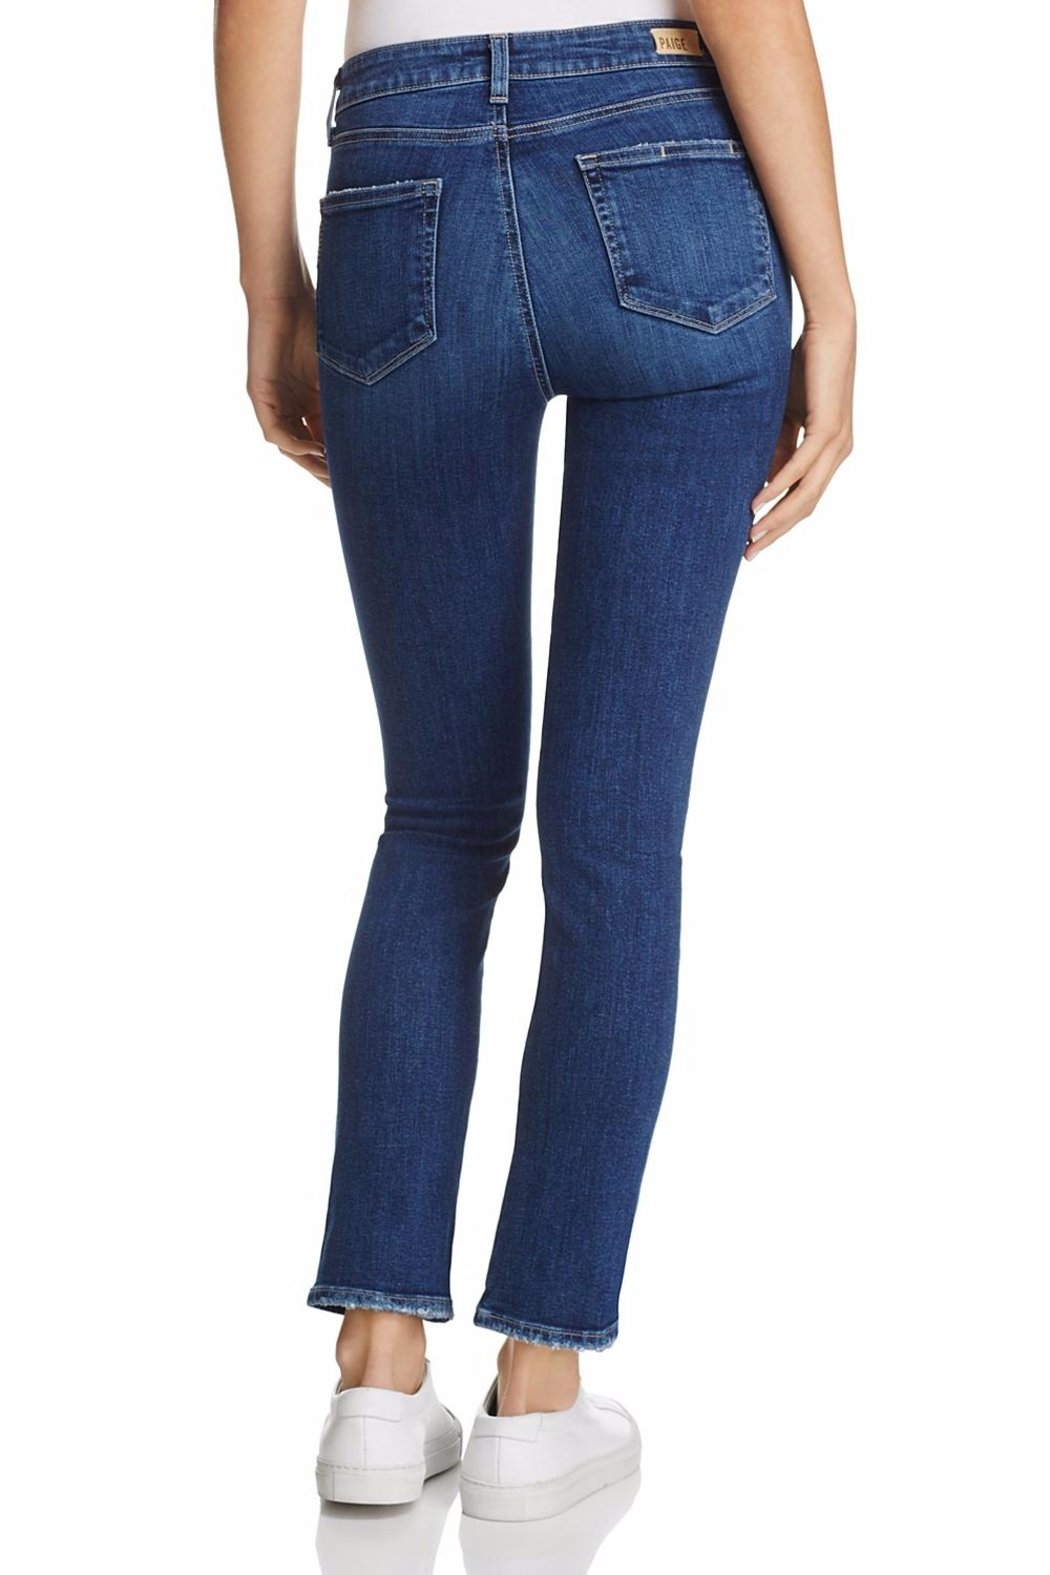 Paige Julia Twisted Seams Jeans - Front Full Image